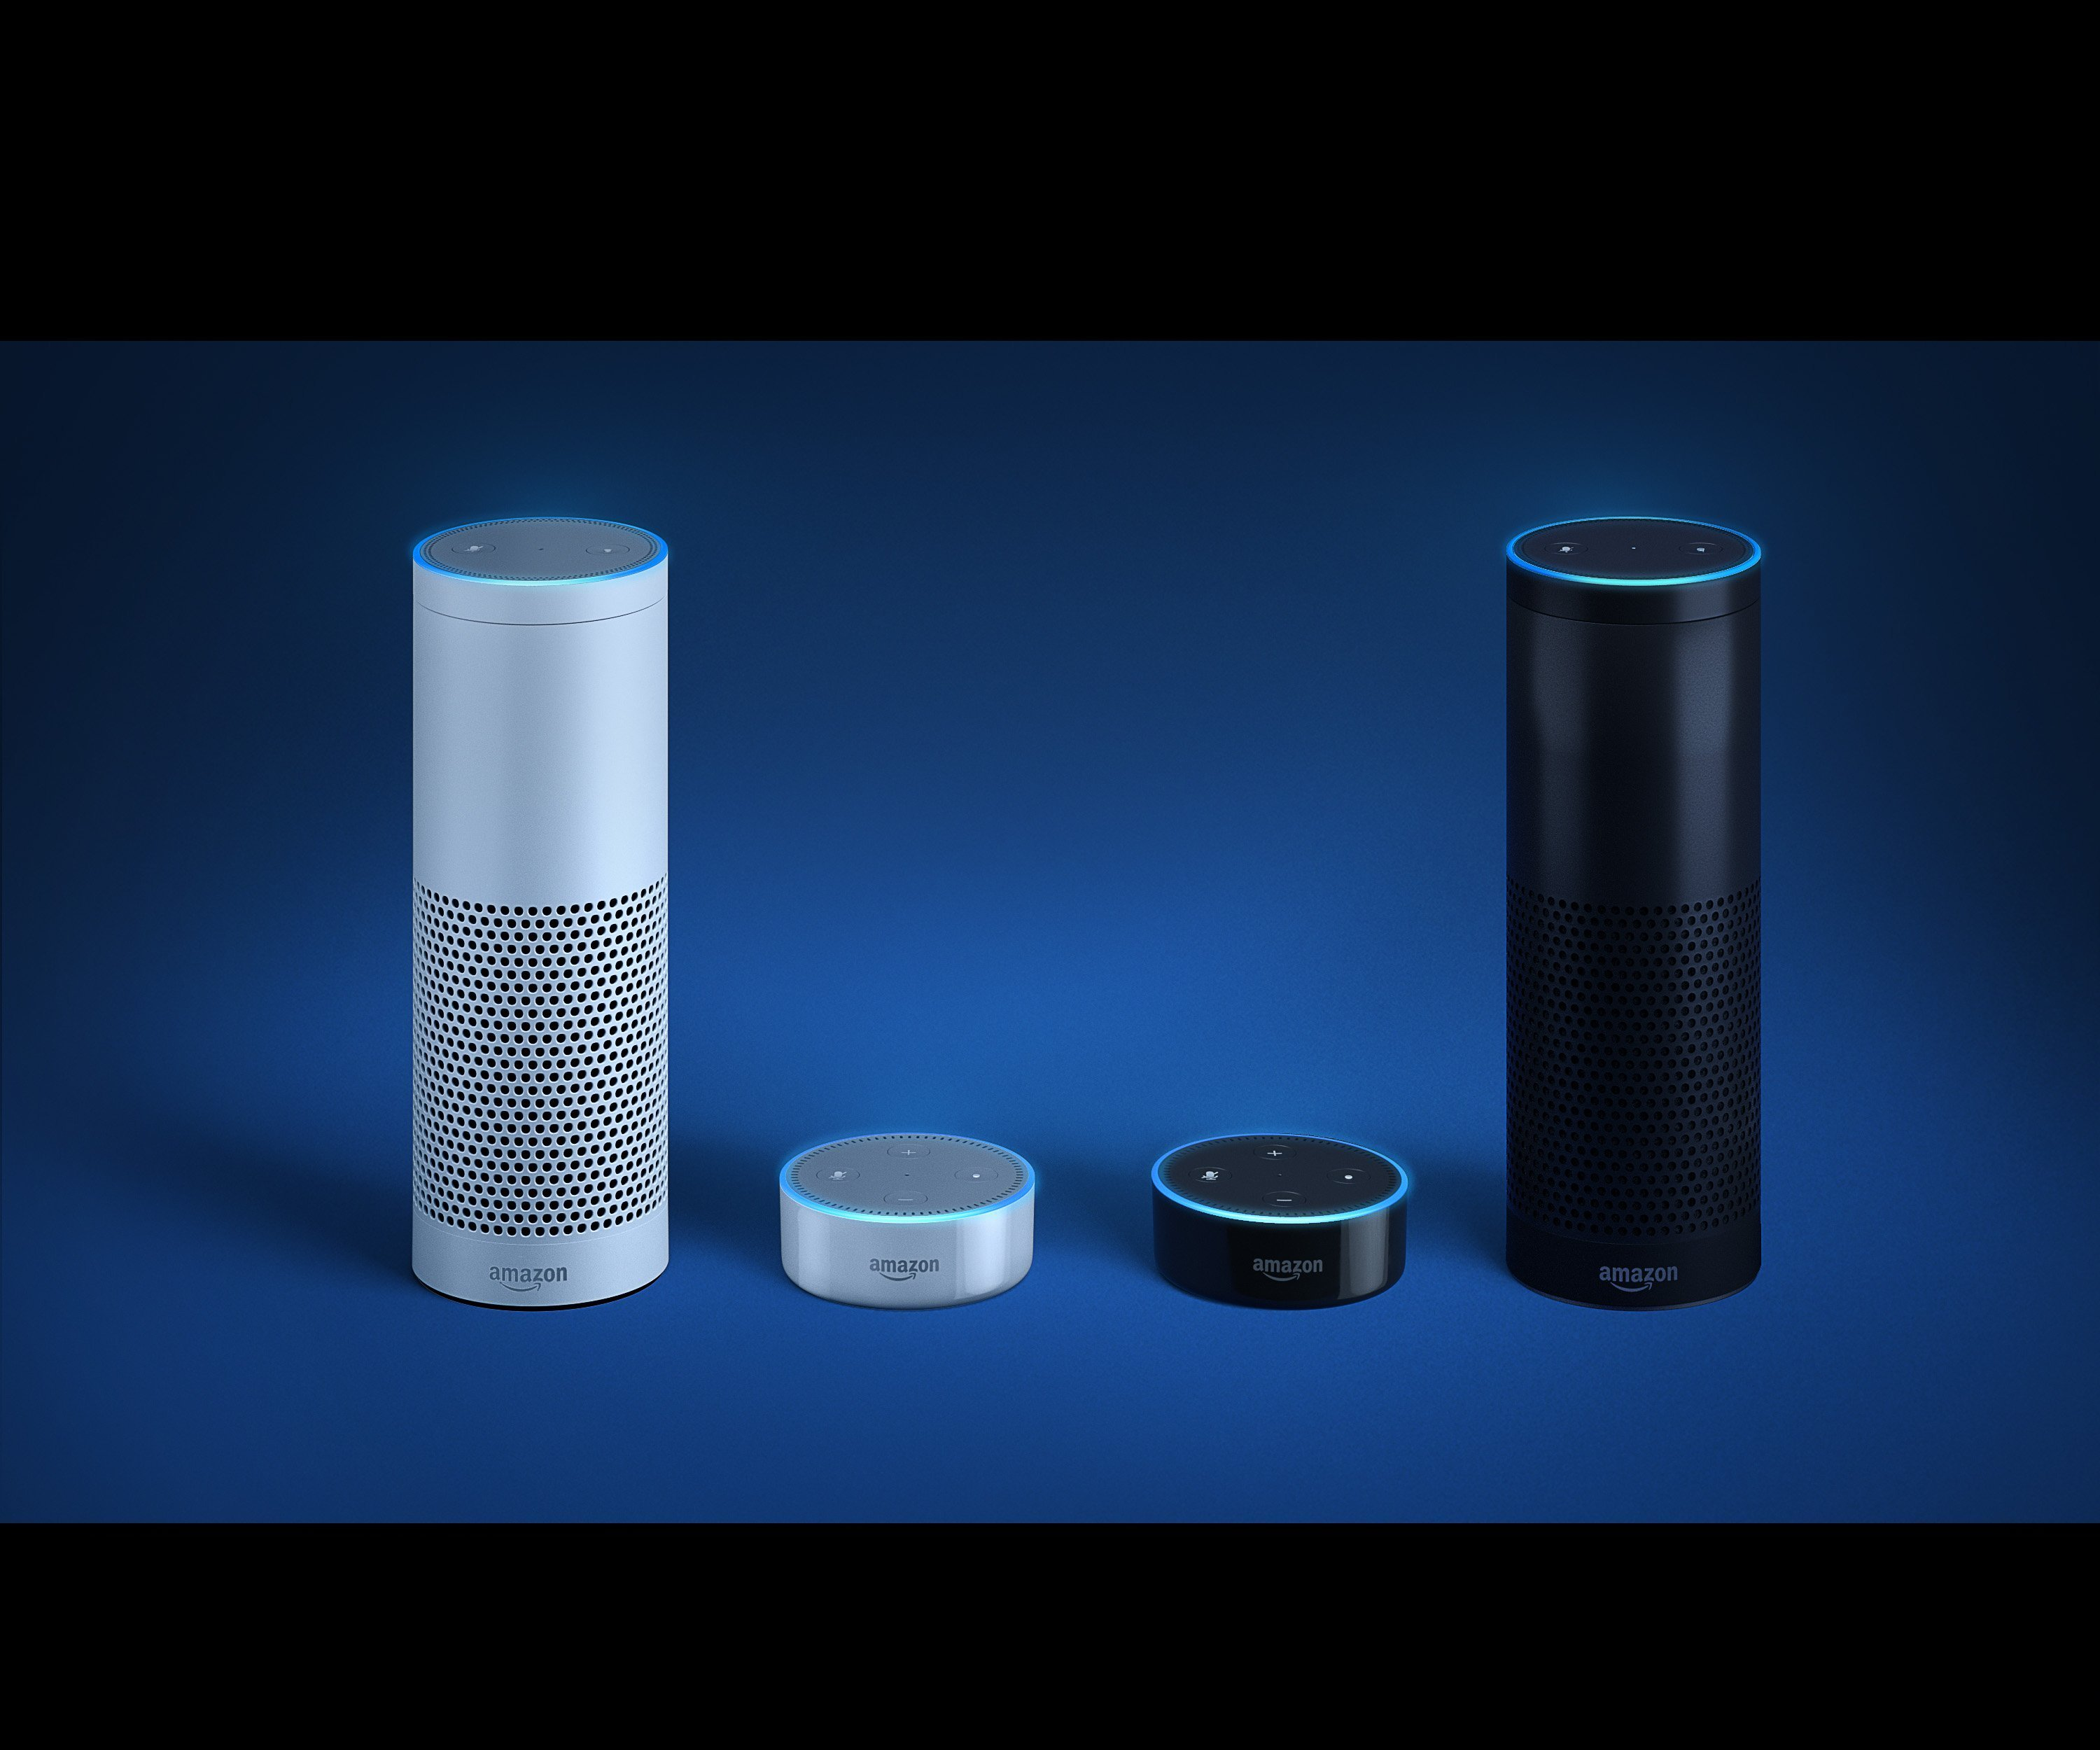 A man accused of beating his girlfriend and threatening to kill her was jailed after an Amazon Echo a voice-activated speaker device called 911 authorities said